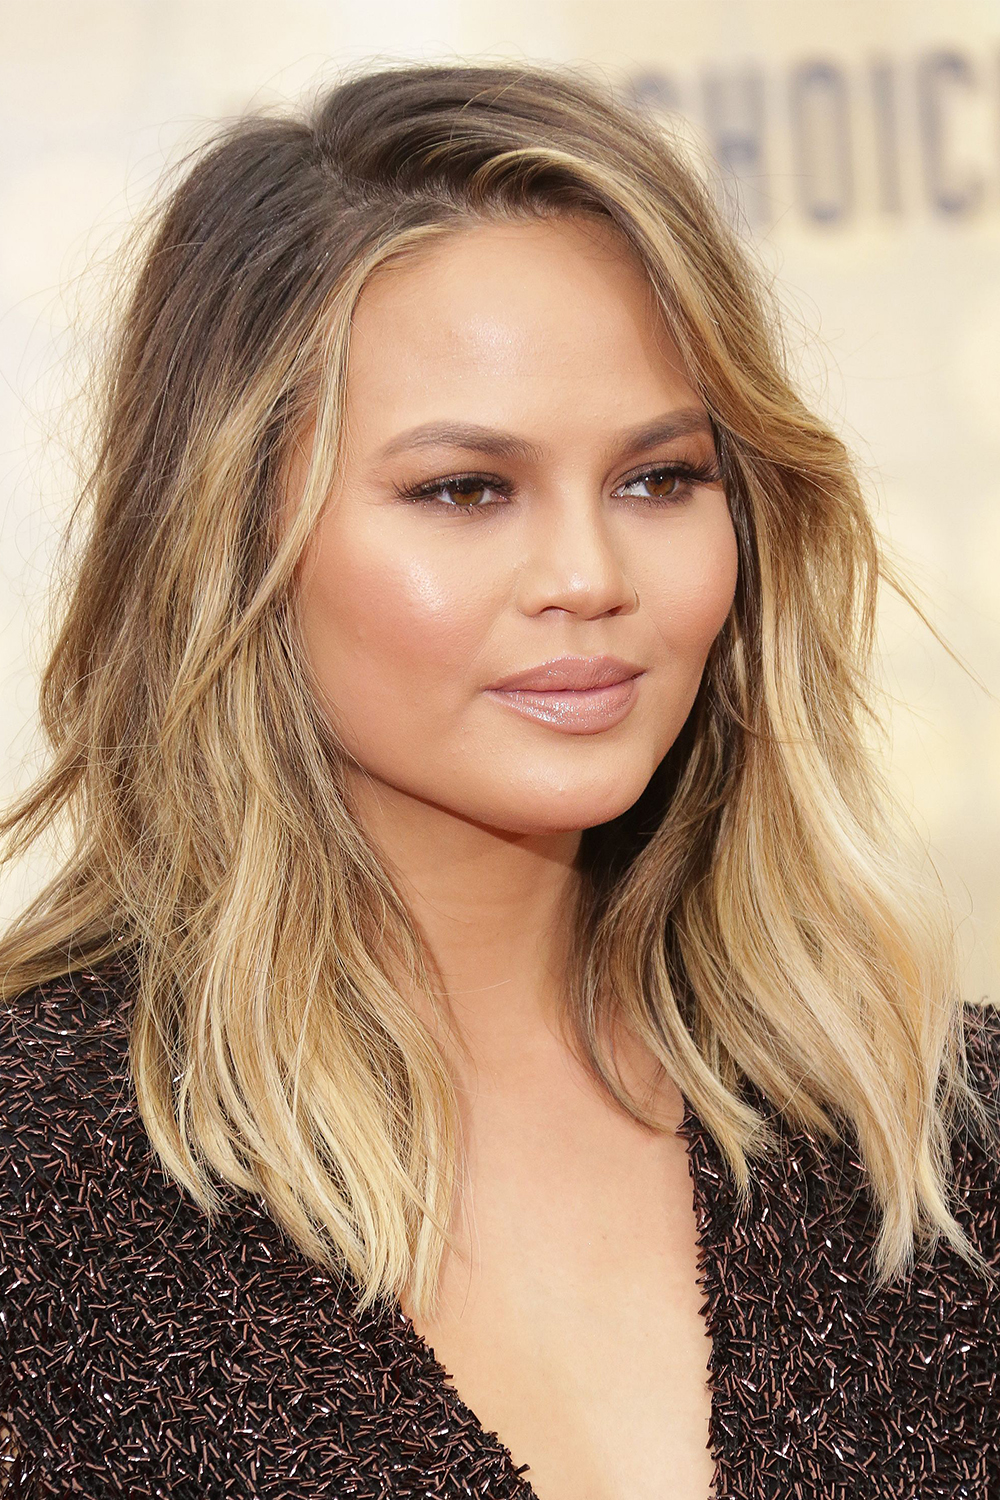 What Is Balayage Hair And Why Is It So Very Popular